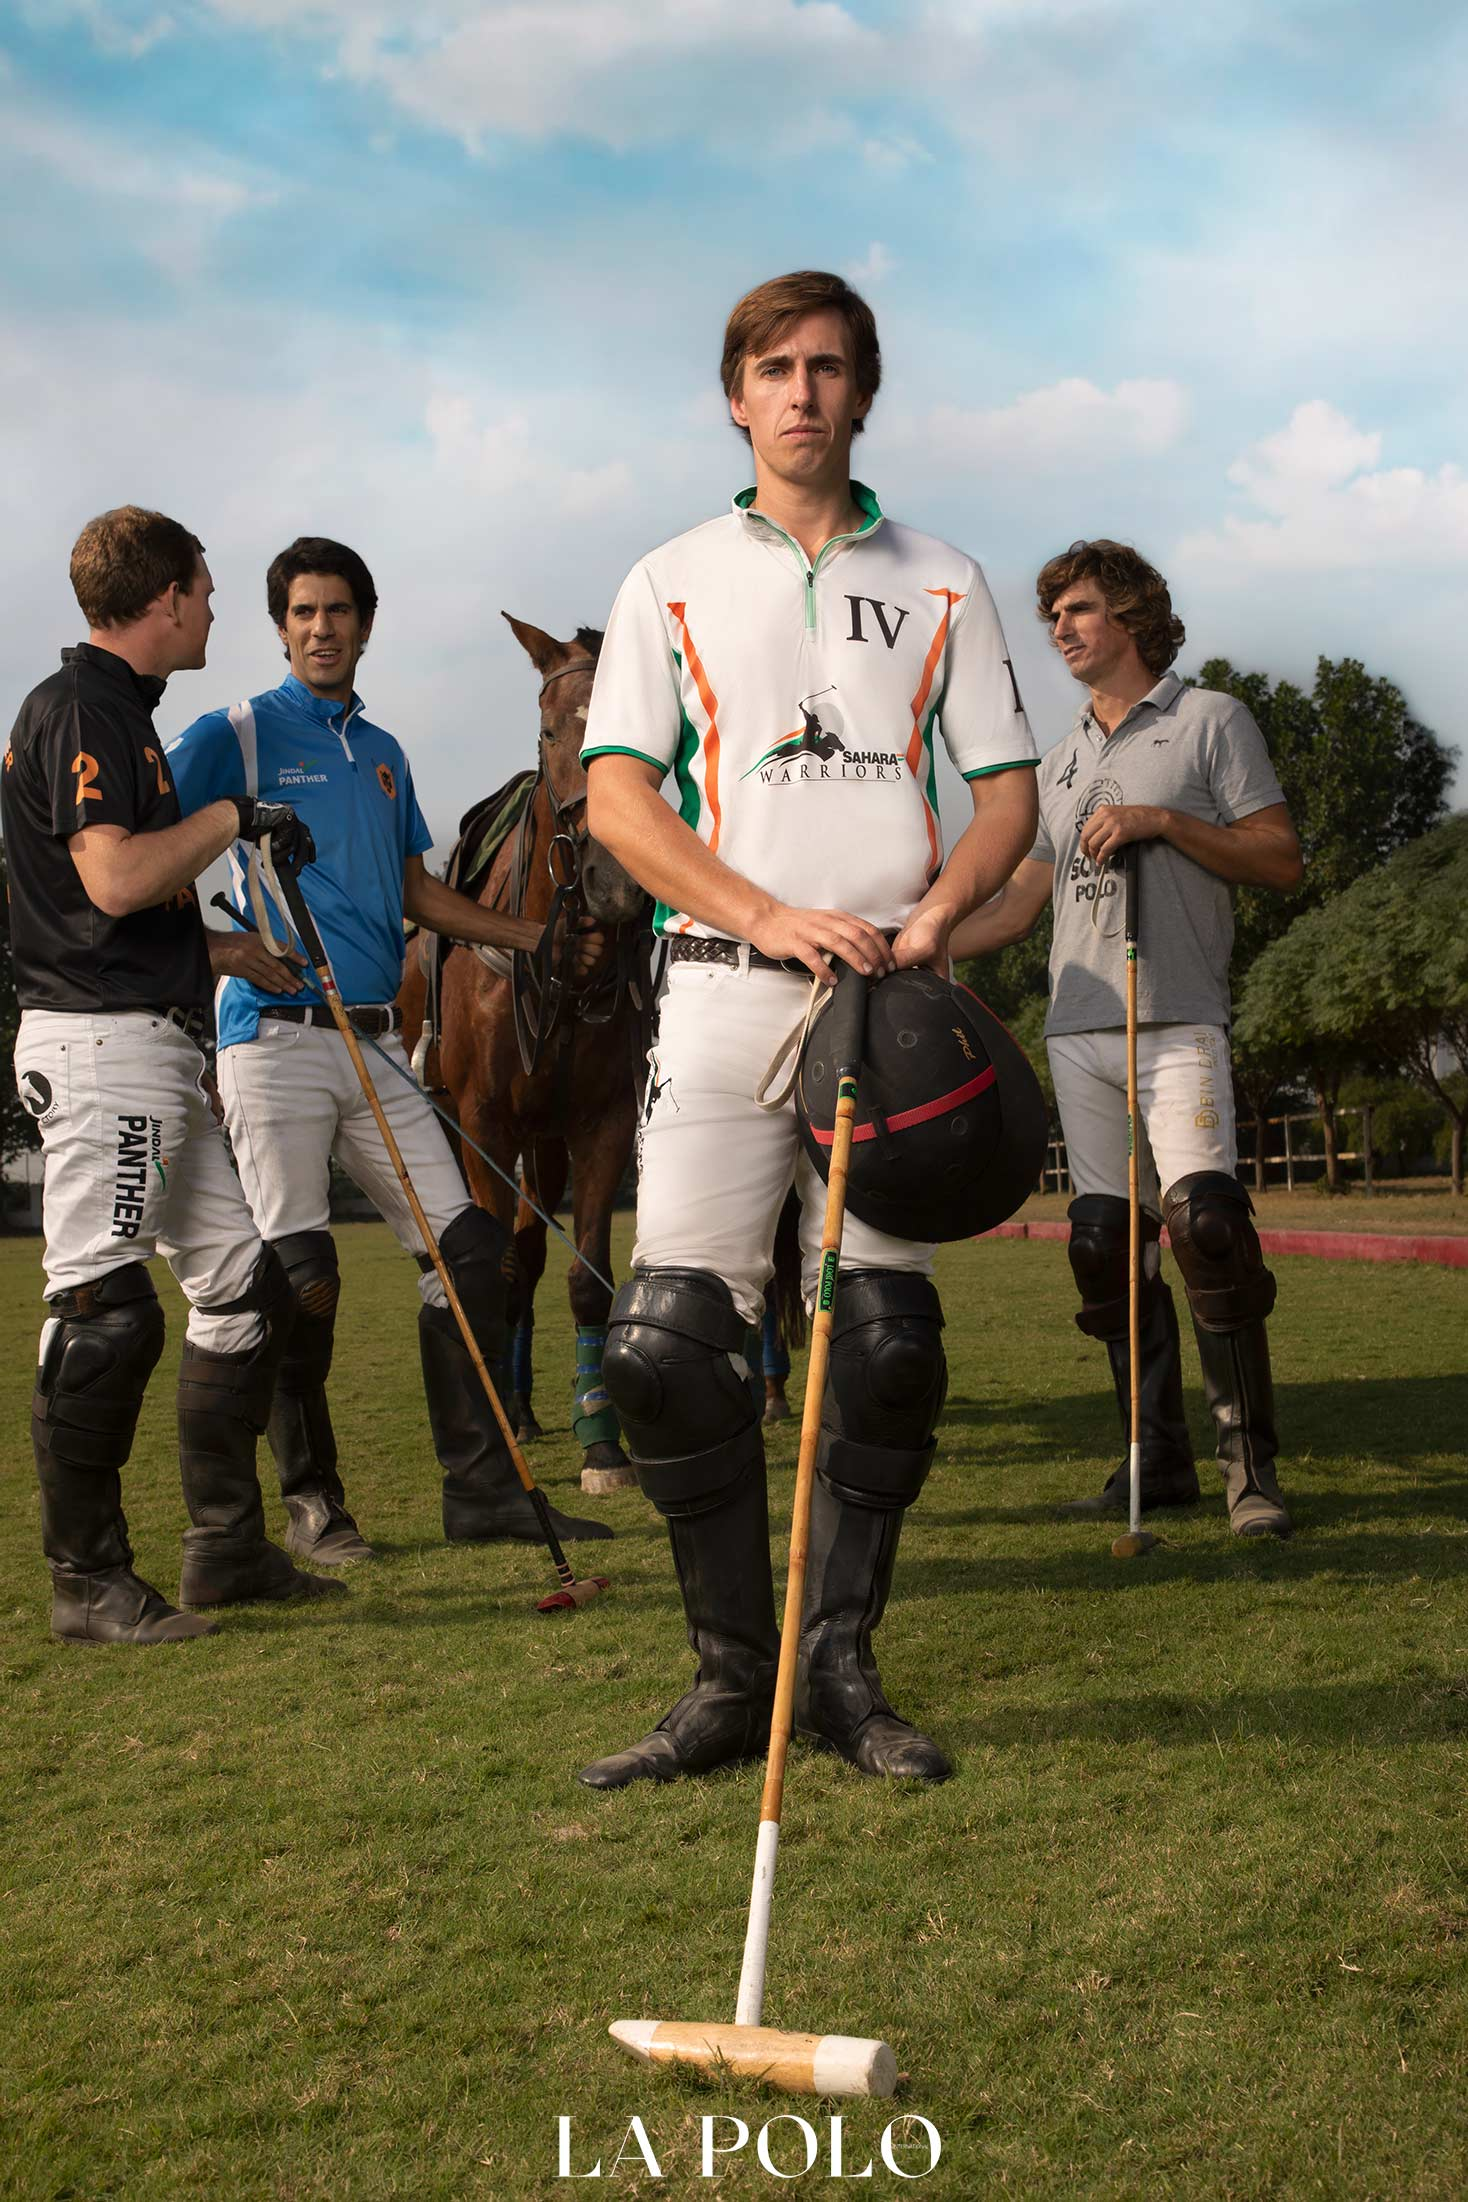 Matthew-perry-polo-player-lapolo